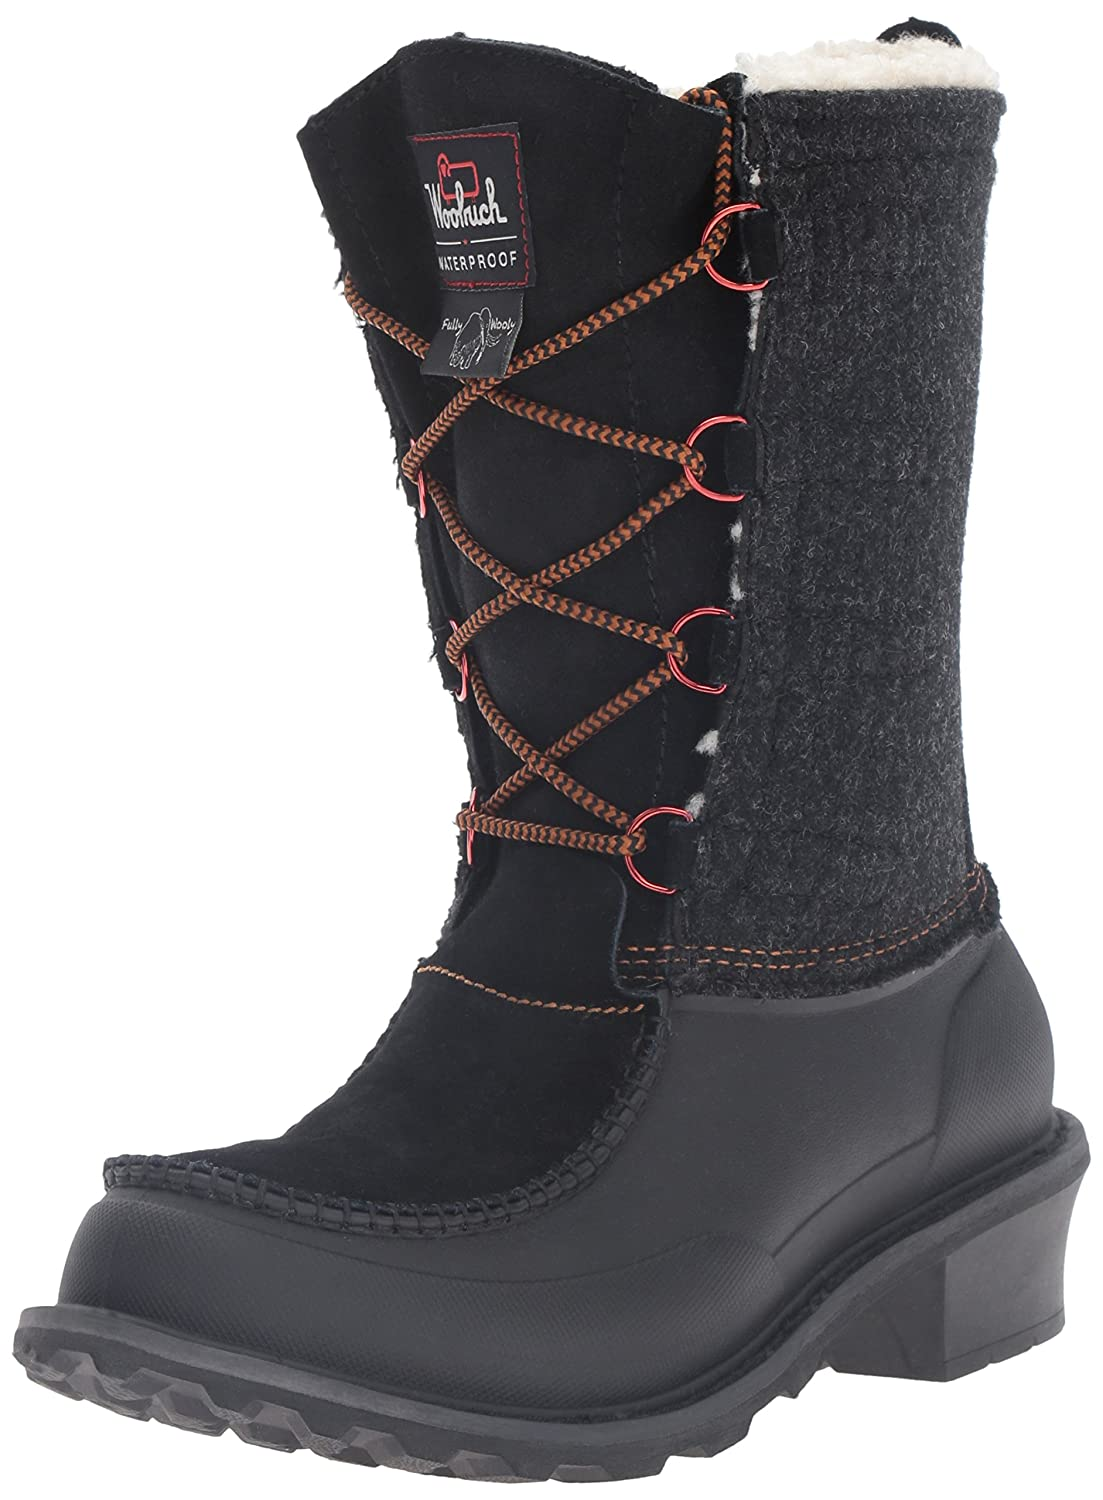 Woolrich Women's Fully Wooly Lace Winter Boot B01A7TVX7C 8.5 M US|Black